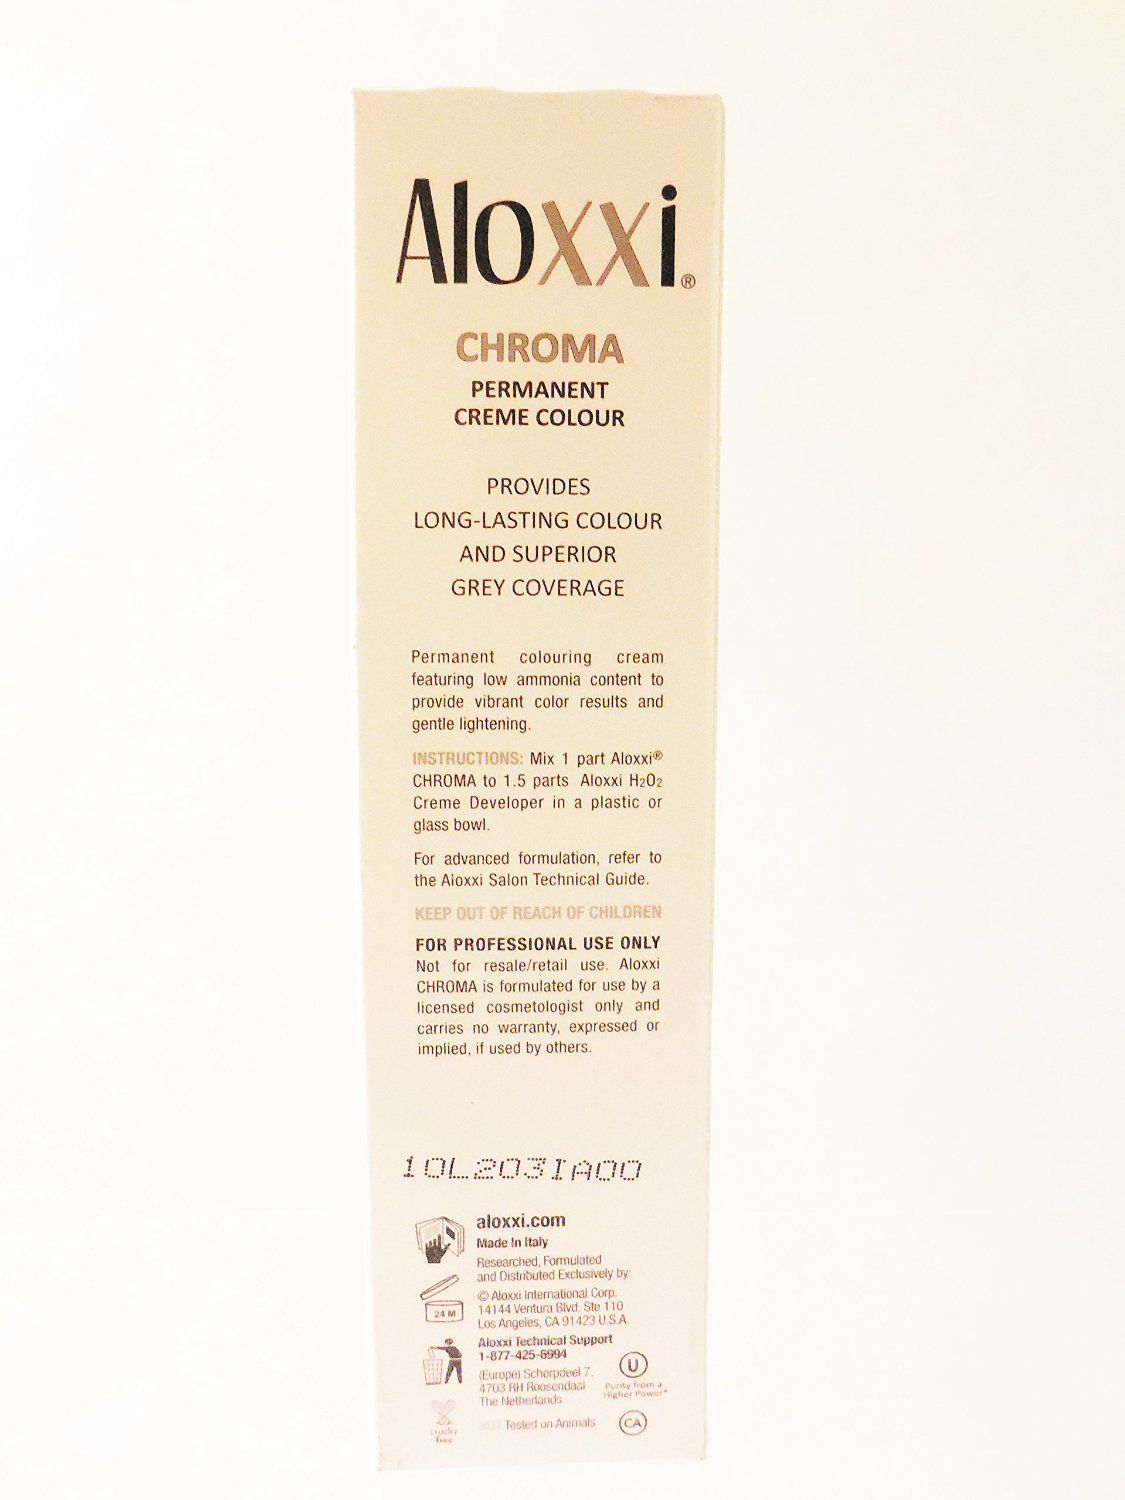 Aloxxi Chroma 9nt Very Light Natural Warm Blonde By Nexxus You Can Get More Details By Clicking On The Image Creme Color Natural Blondes Golden Blonde